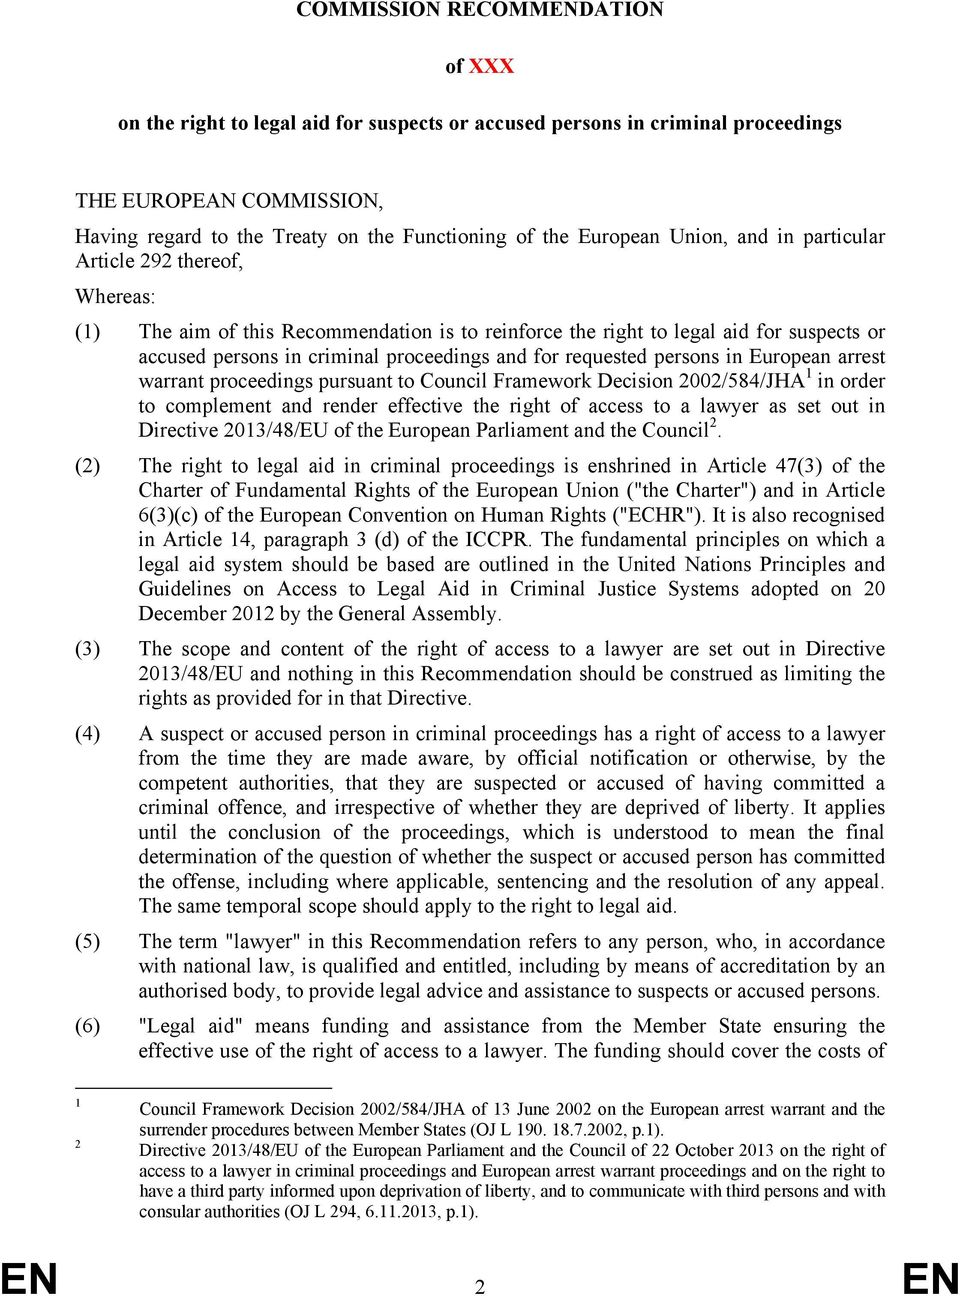 for requested persons in European arrest warrant proceedings pursuant to Council Framework Decision 2002/584/JHA 1 in order to complement and render effective the right of access to a lawyer as set